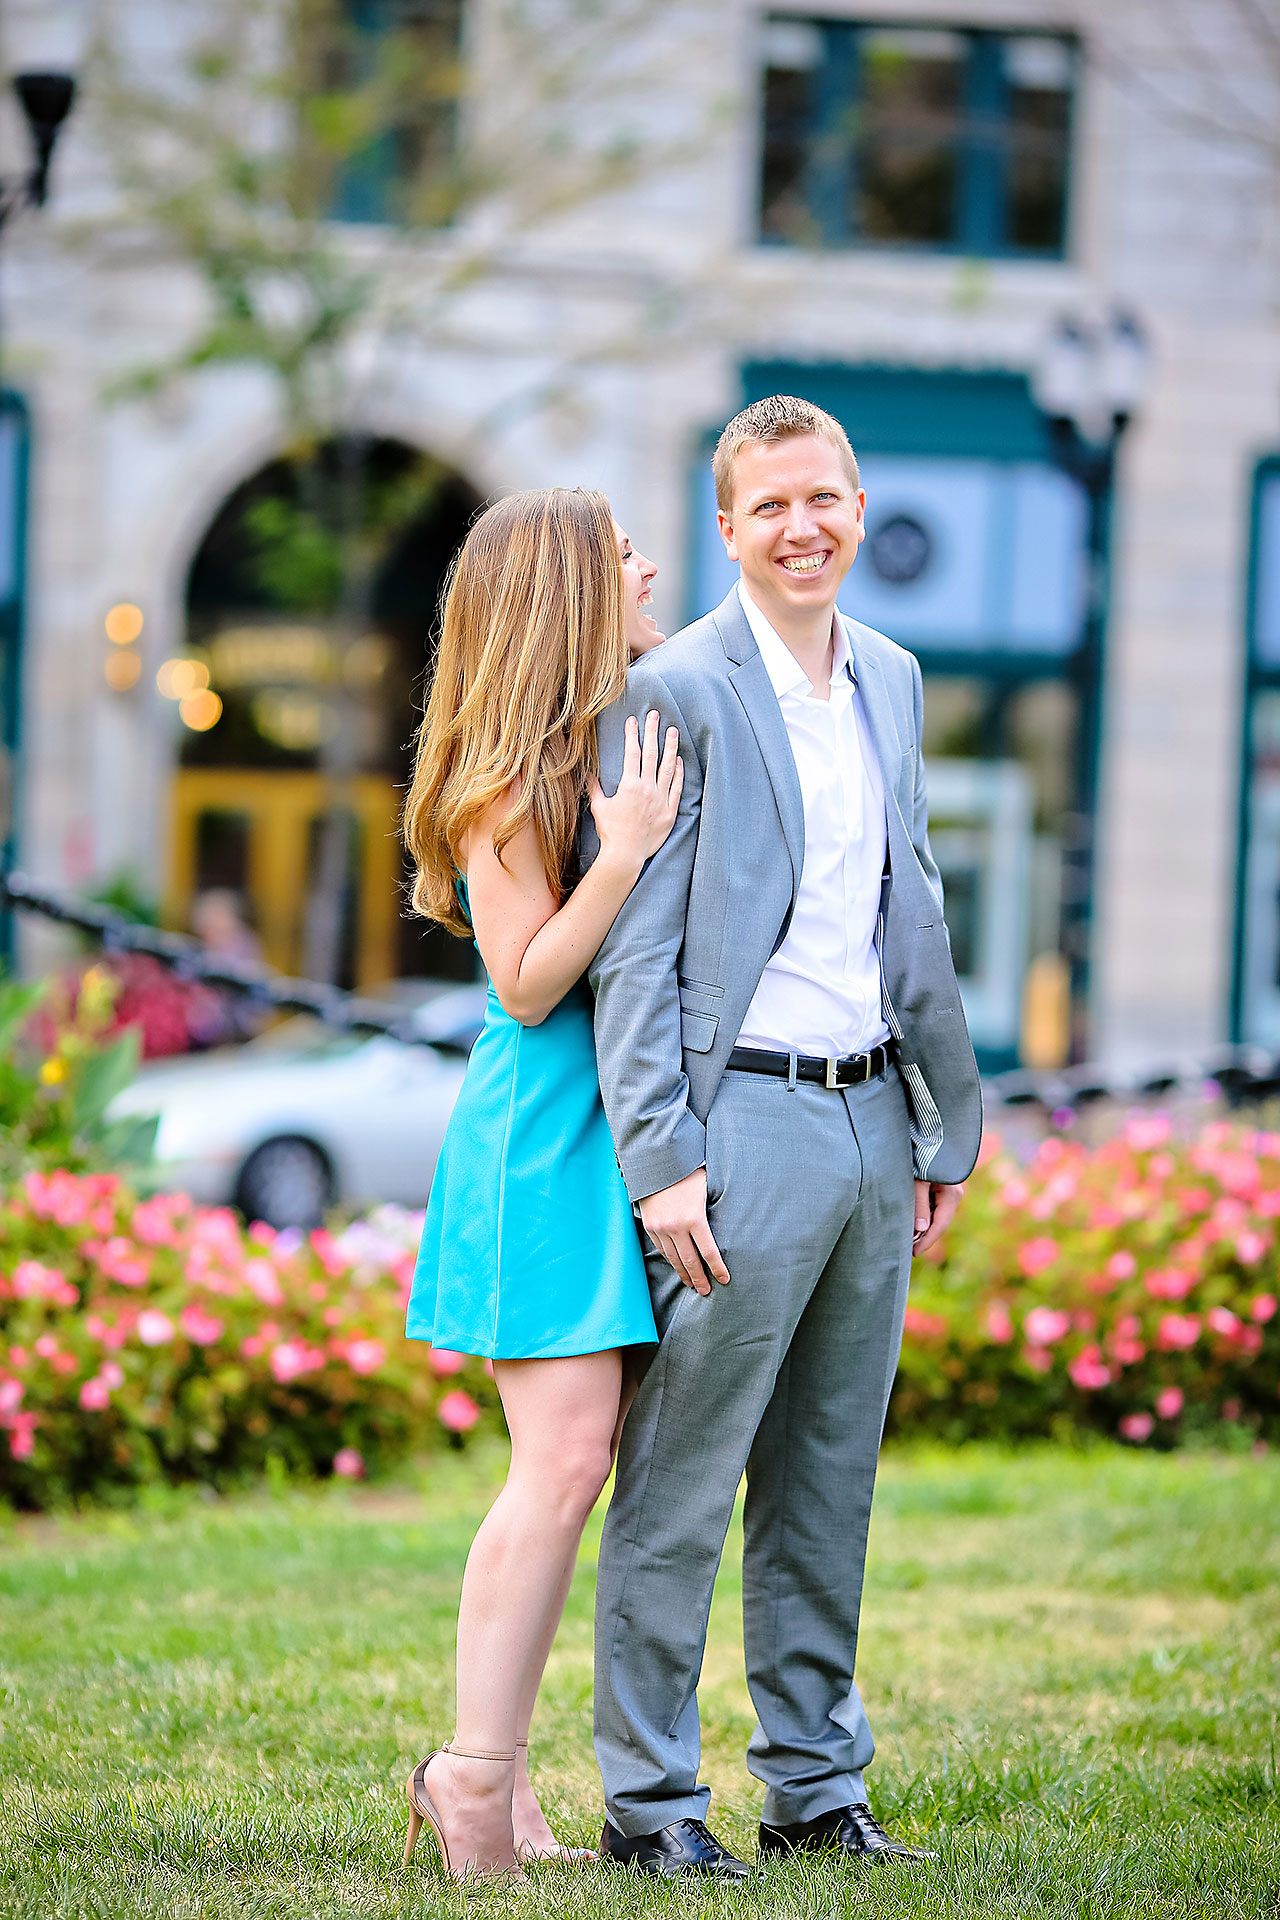 Chelsea Jeff Downtown Indy Engagement Session 011